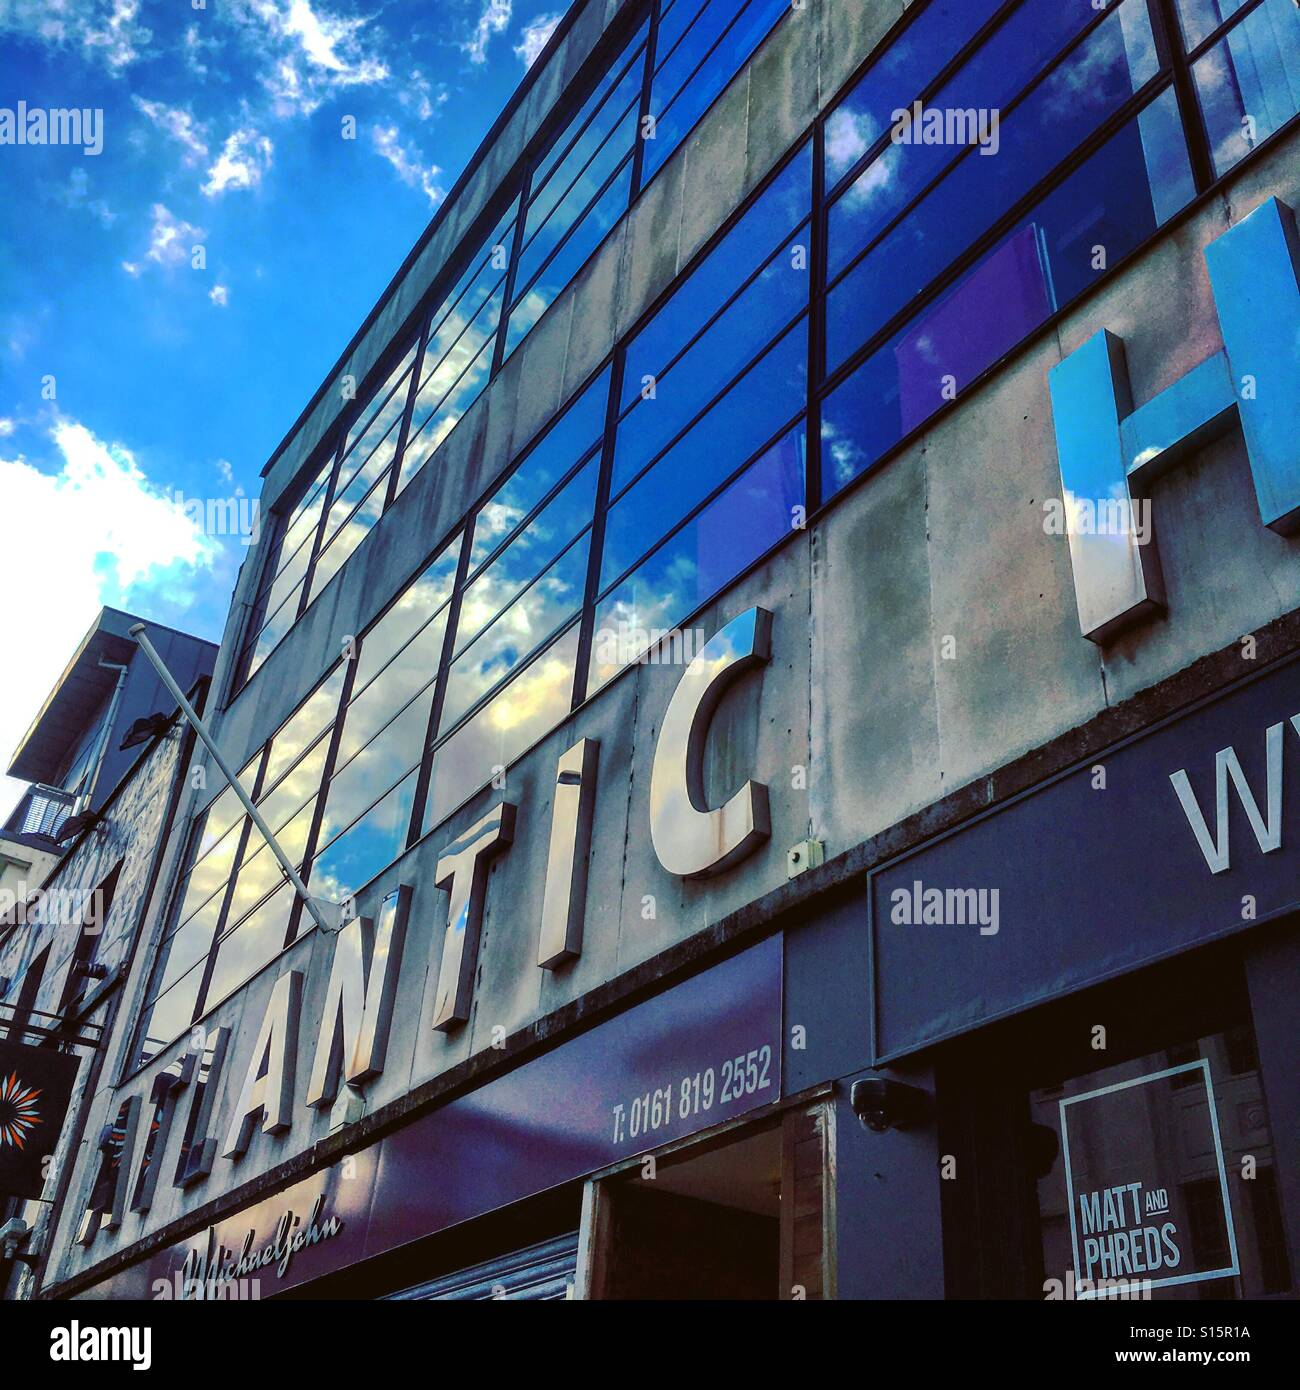 Atlantic House on Oldham Street in Manchester - Stock Image